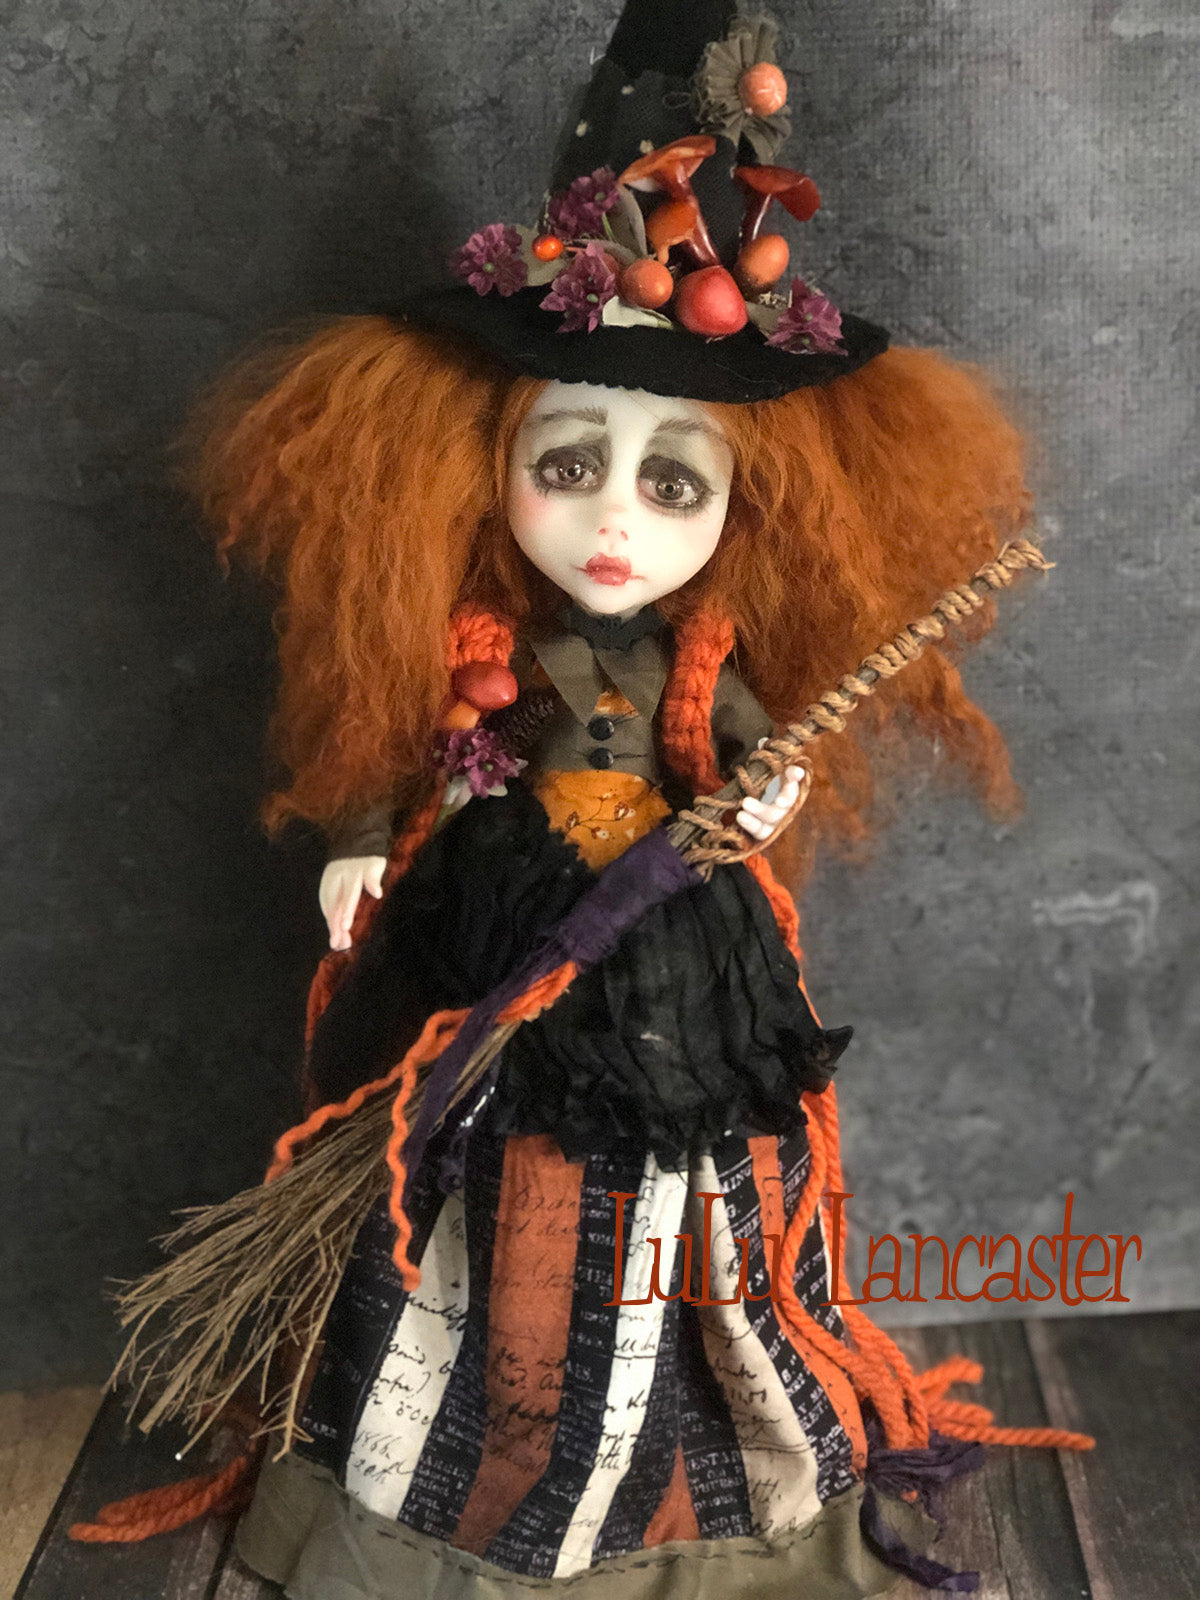 Crisanta the Witch Halloween Autumn One of a Kind Art Doll by LuLu Lancaster